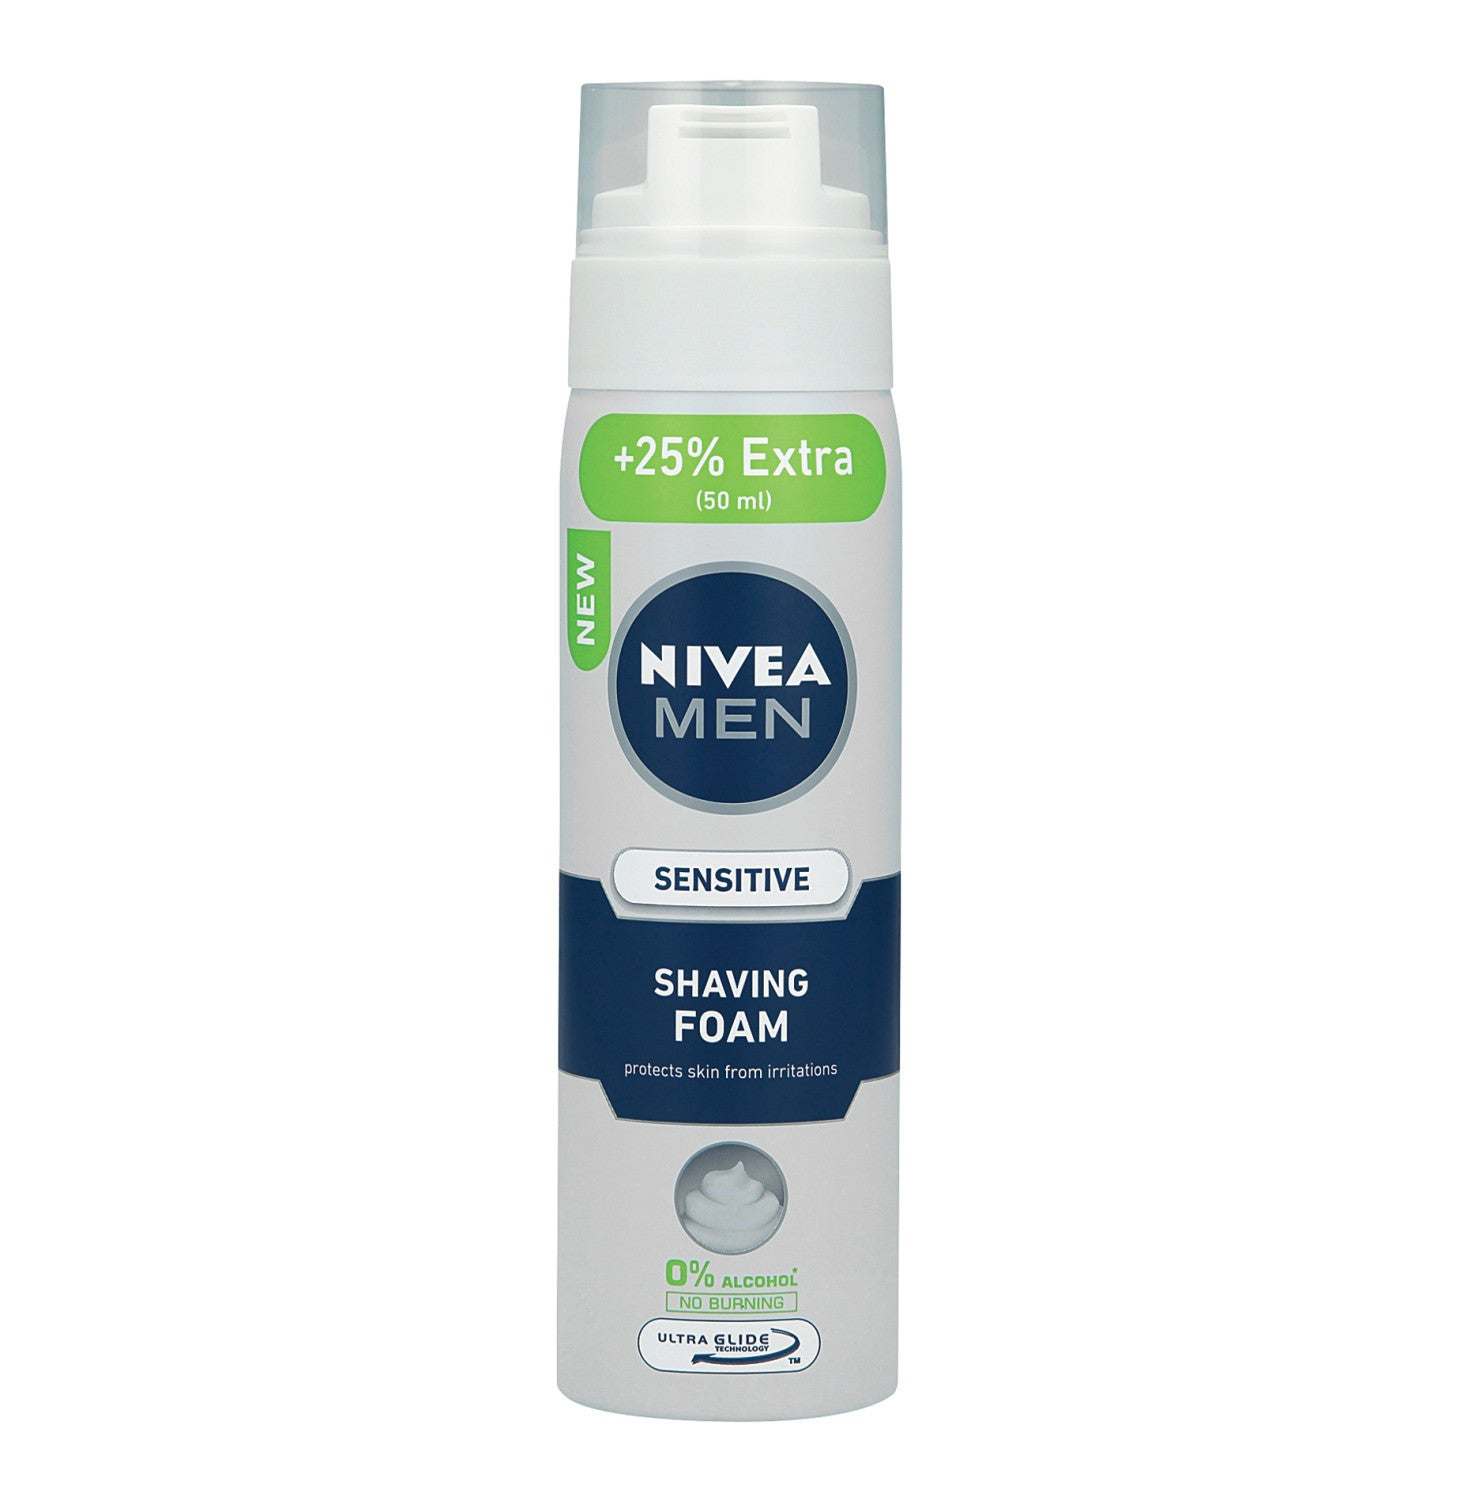 NIVEA Shaving Foam Sensitive 25% Extra (1 x 250ml) - iloveza.com